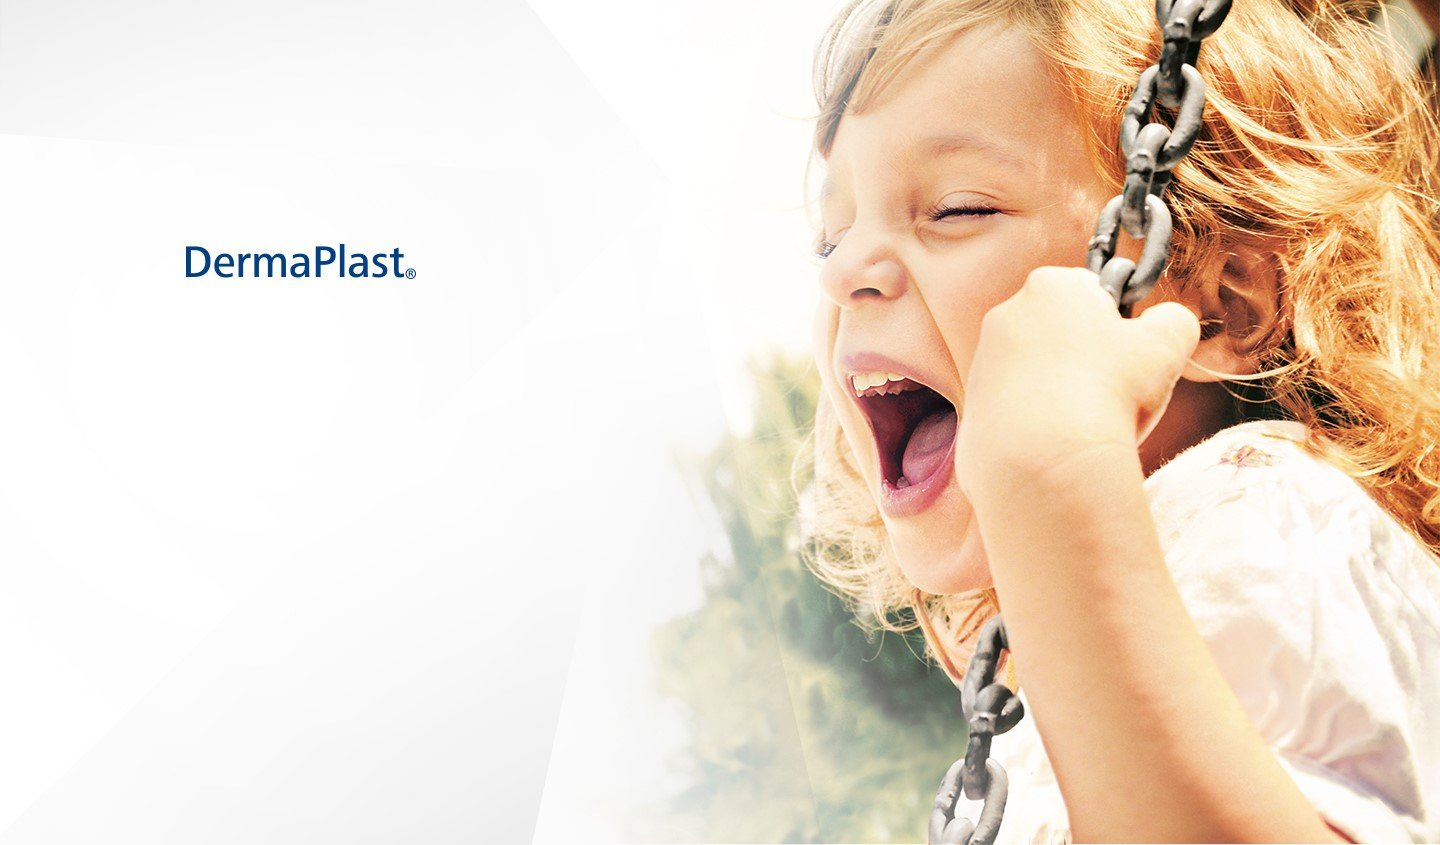 DermaPlast® girl on swing with mouth wide open screaming and laughing.